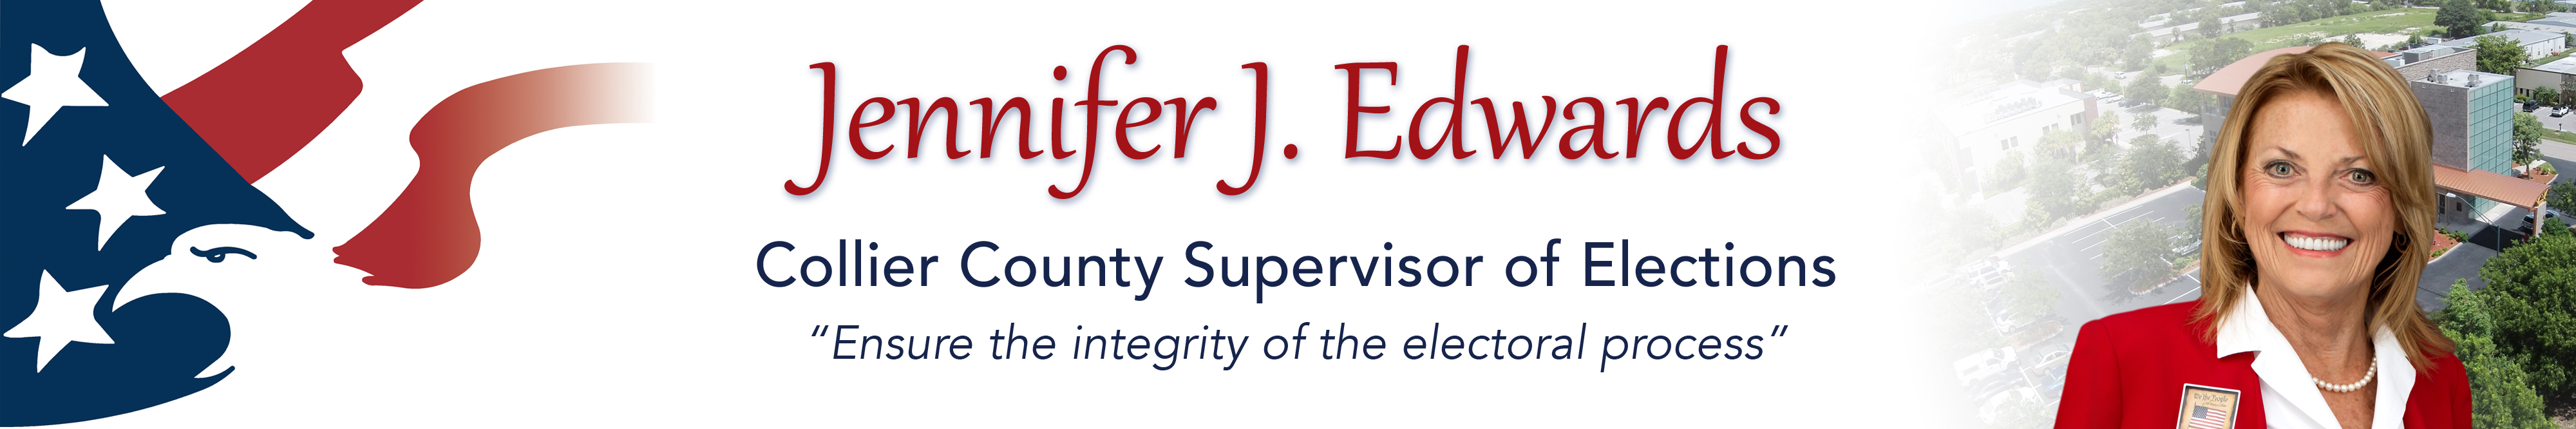 Jennifer J. Edwards Collier County Supervisor of Elections